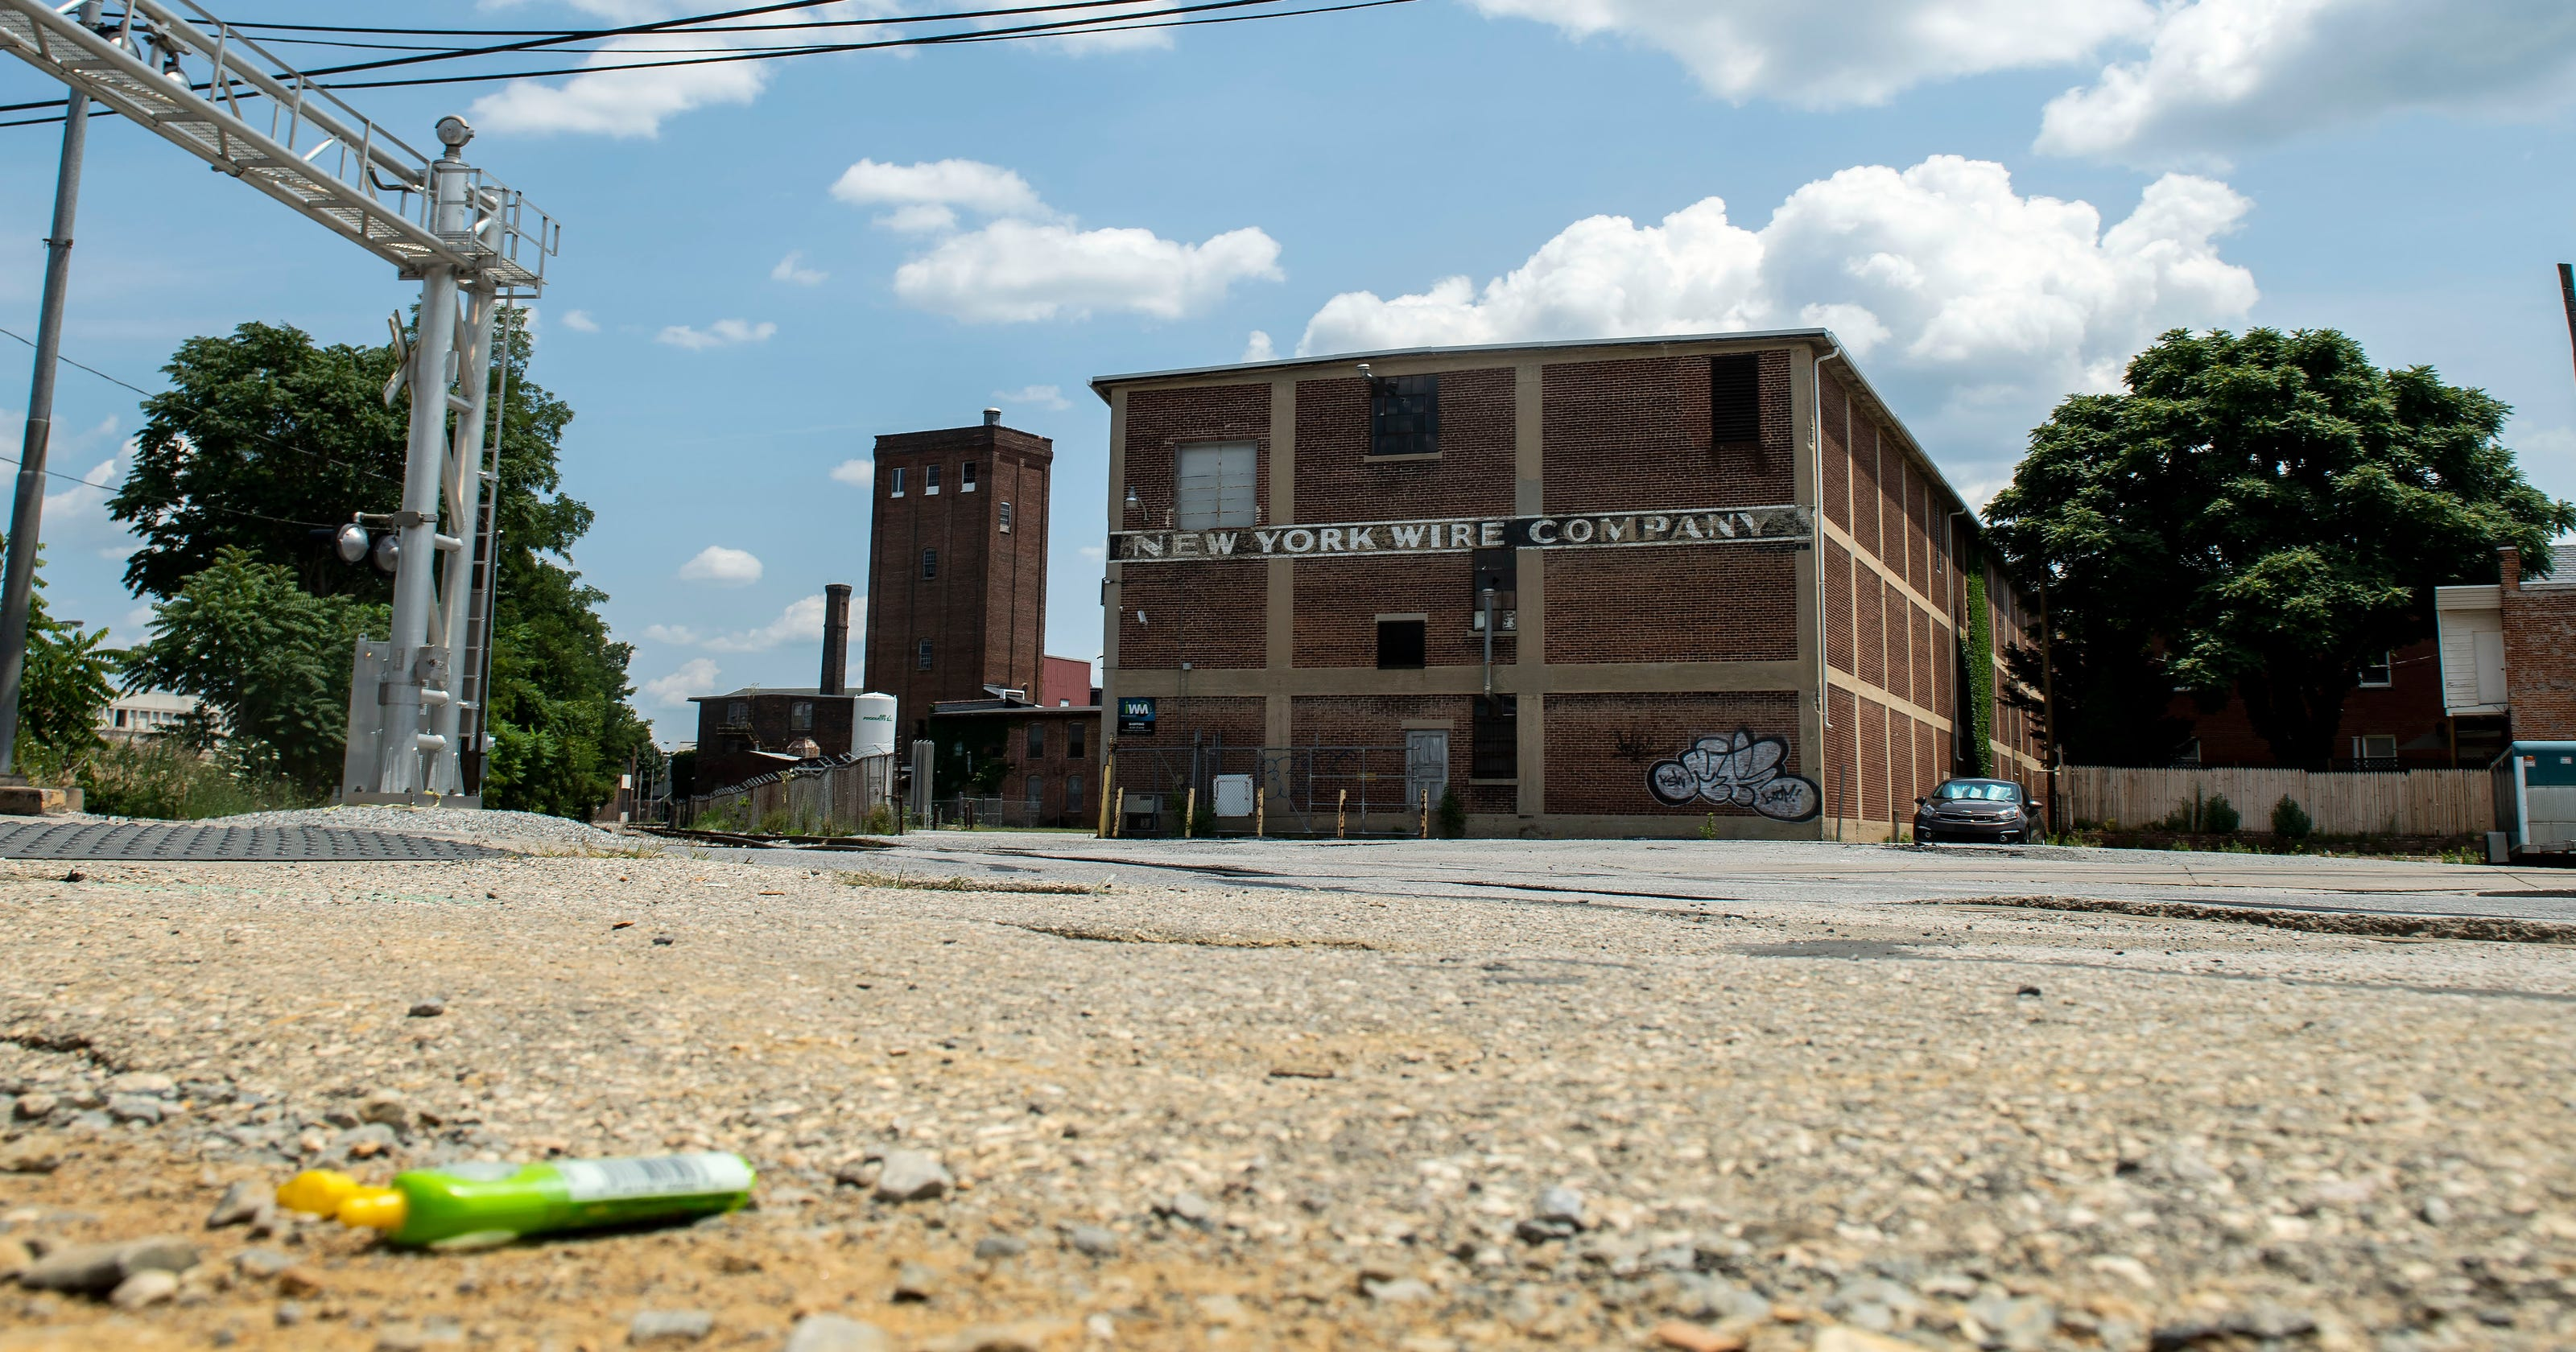 Homeless center in York might spring up at New York Wire Co.